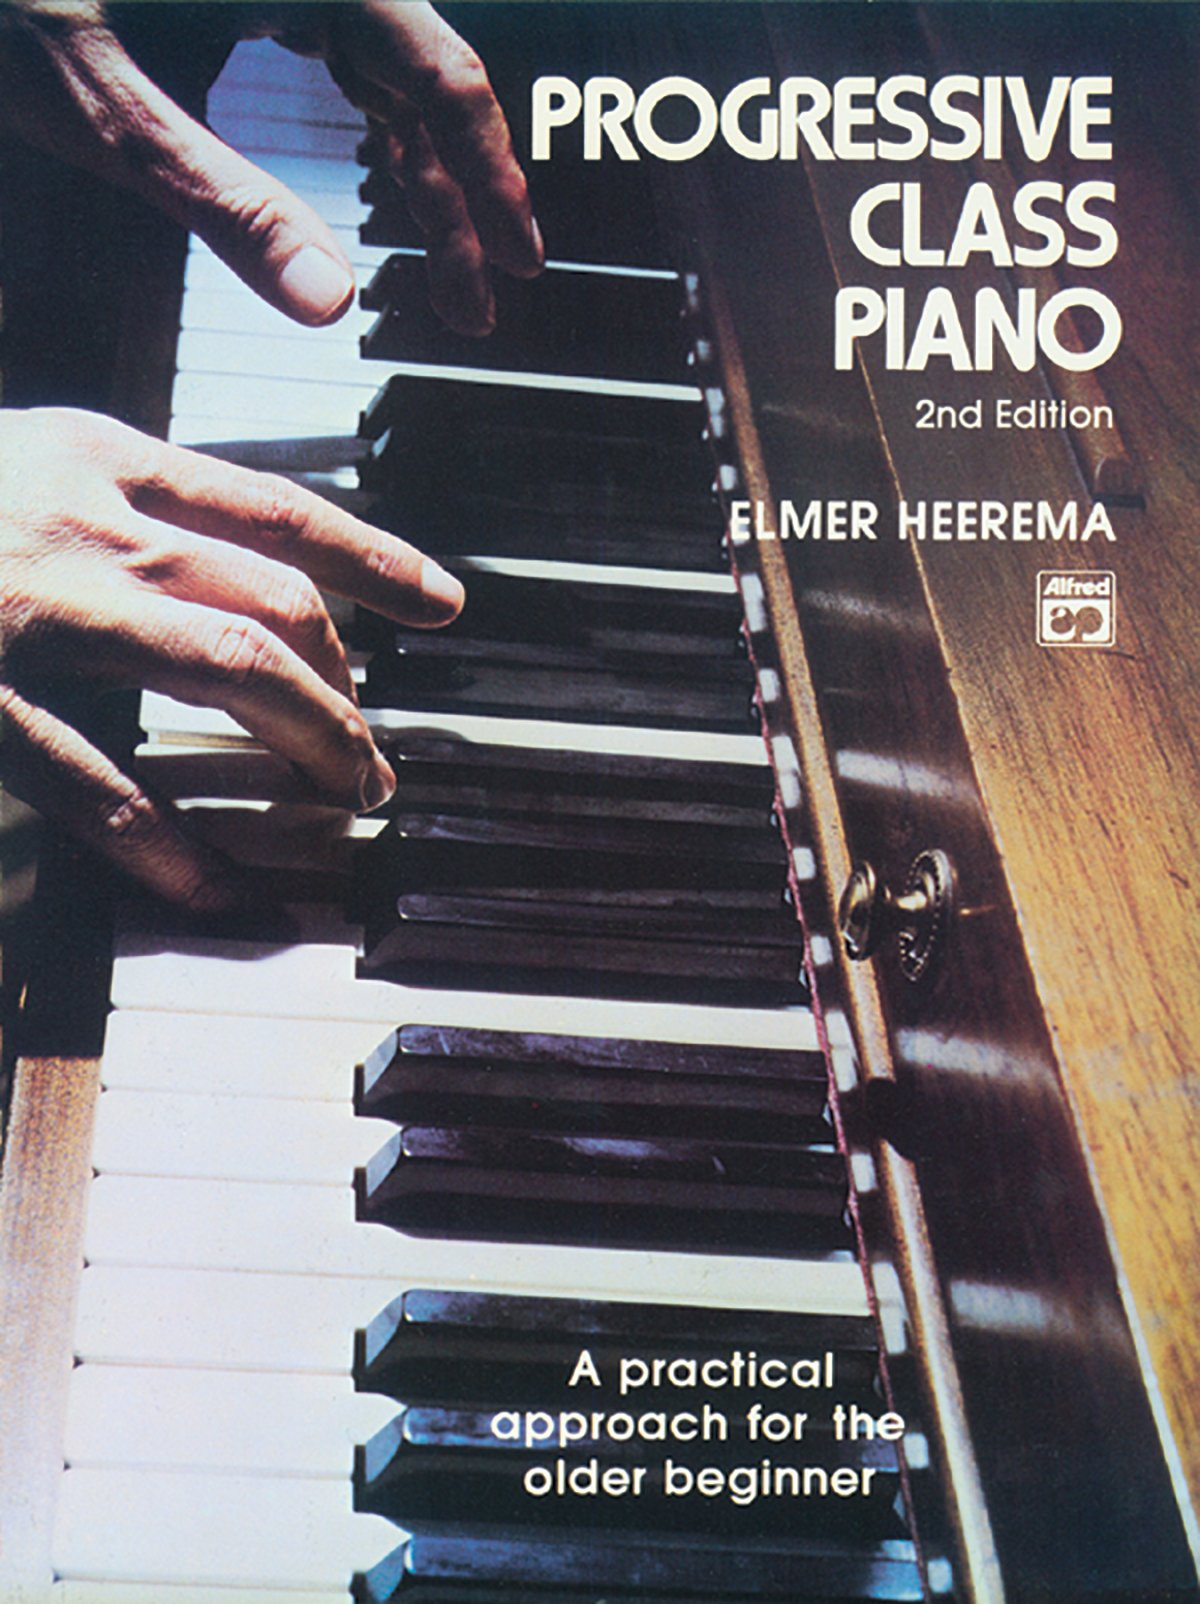 Progressive class piano a practical approach for the older beginner progressive class piano a practical approach for the older beginner comb bound book elmer heerema 9780882842974 amazon books fandeluxe Gallery